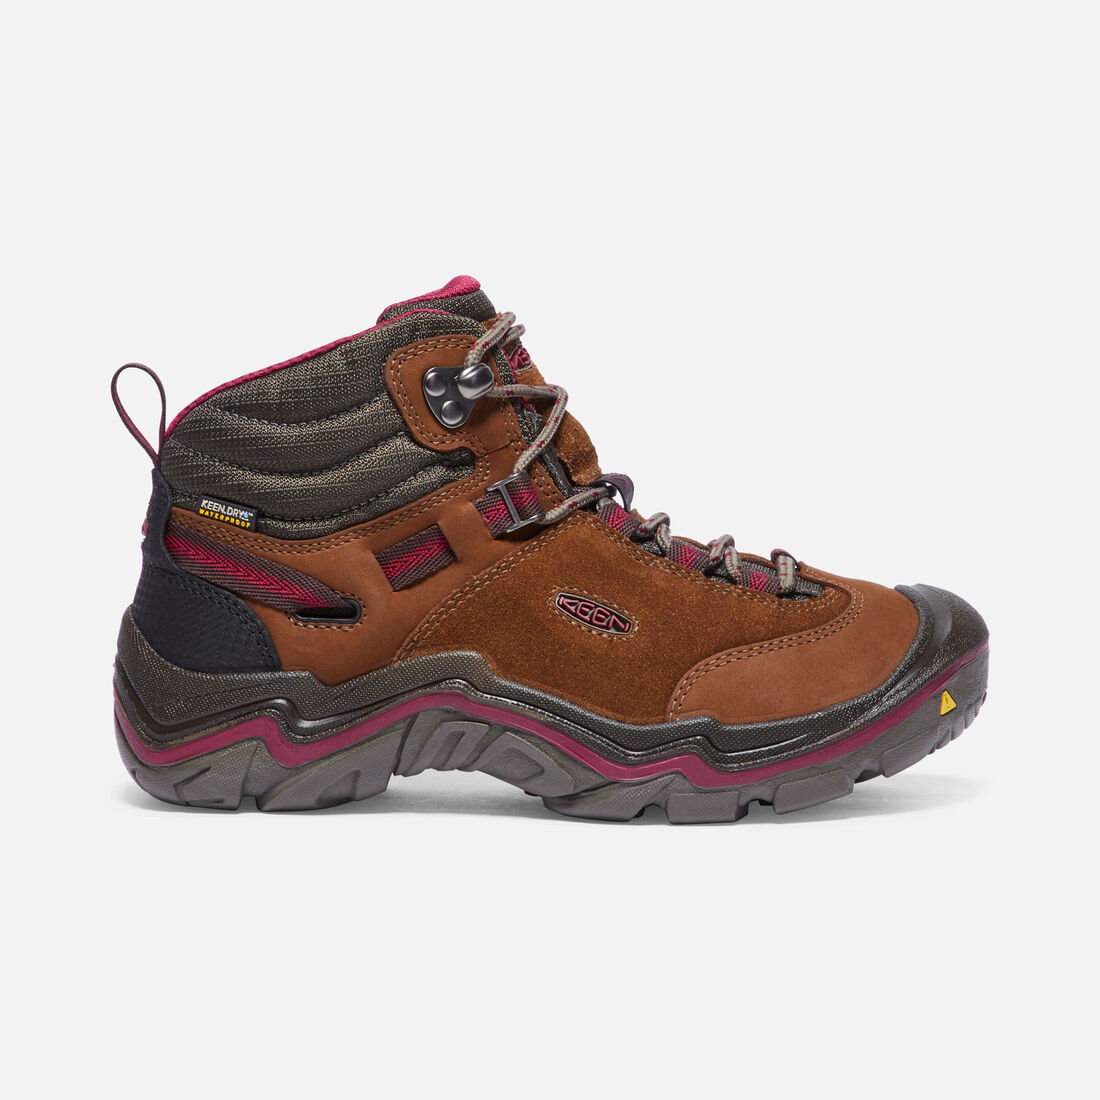 Women's LAUREL Waterproof MID in Monks Robe/Rhododendron - large view.